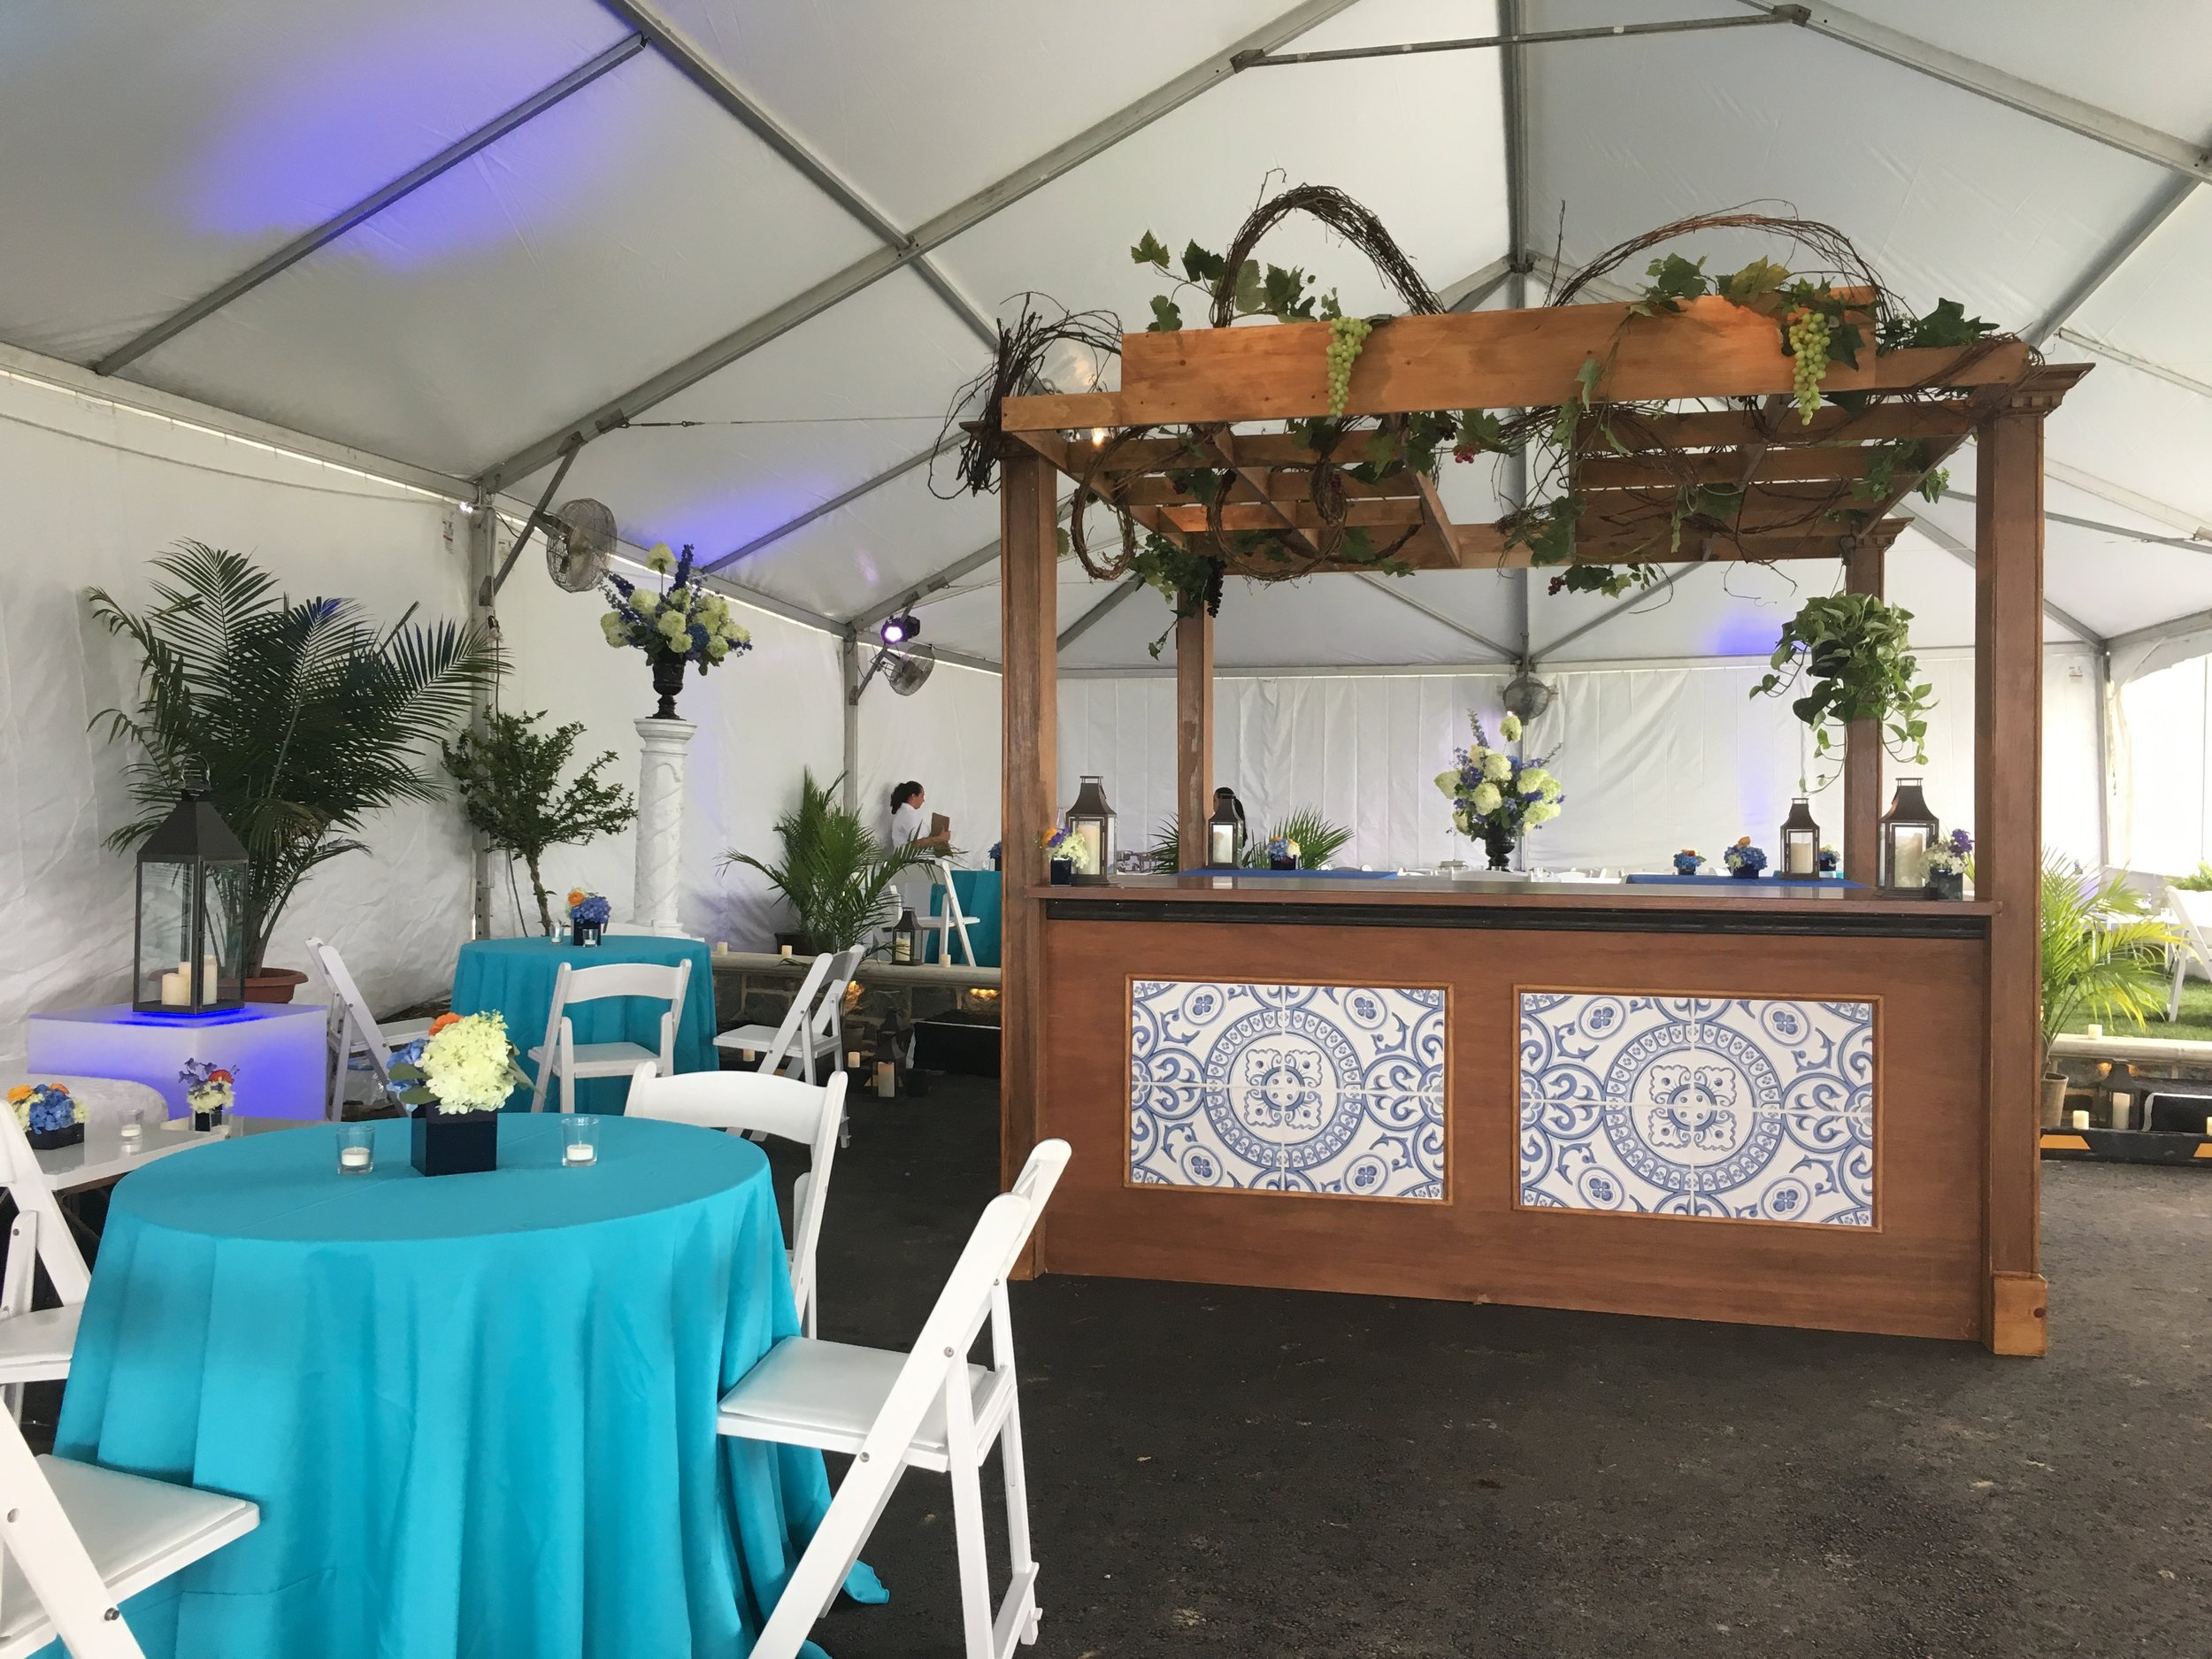 greek+theme+greece+mediterranean+themed+party+decor+bar+rental+rentals+for+rent+nj+ny+pa+eggsotic+events.jpeg